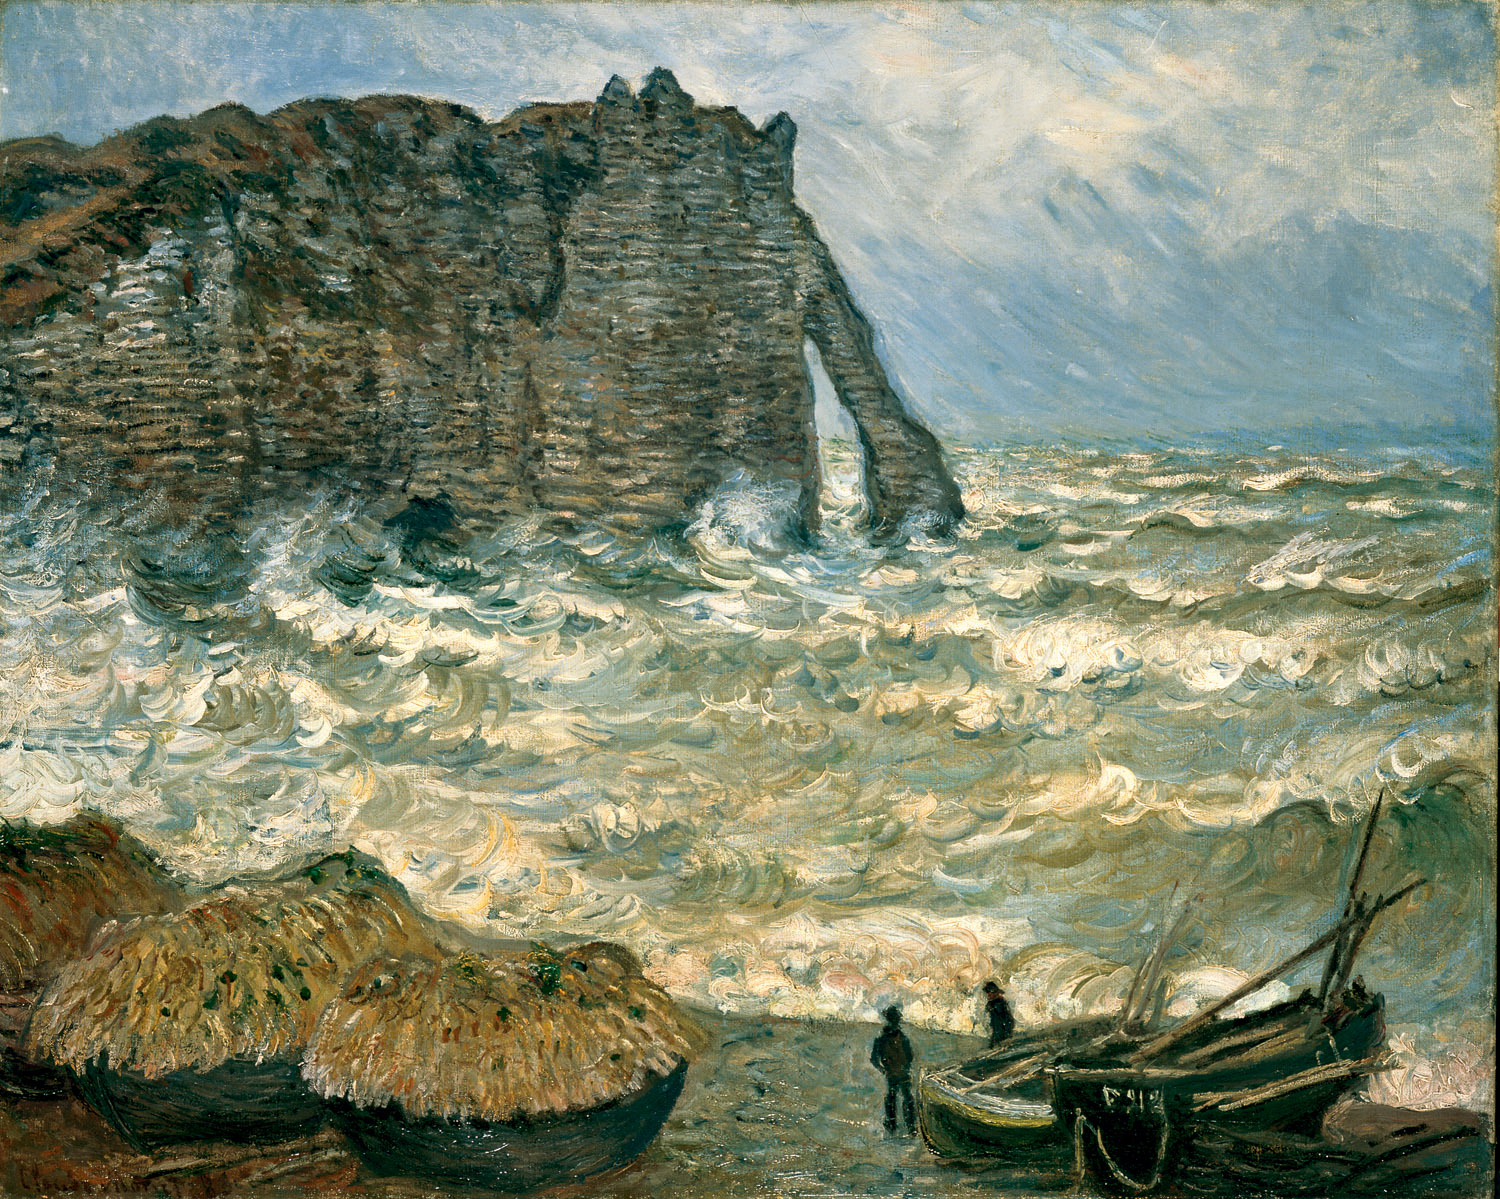 http://upload.wikimedia.org/wikipedia/commons/9/92/Monet-Etretat-Lyon.jpg